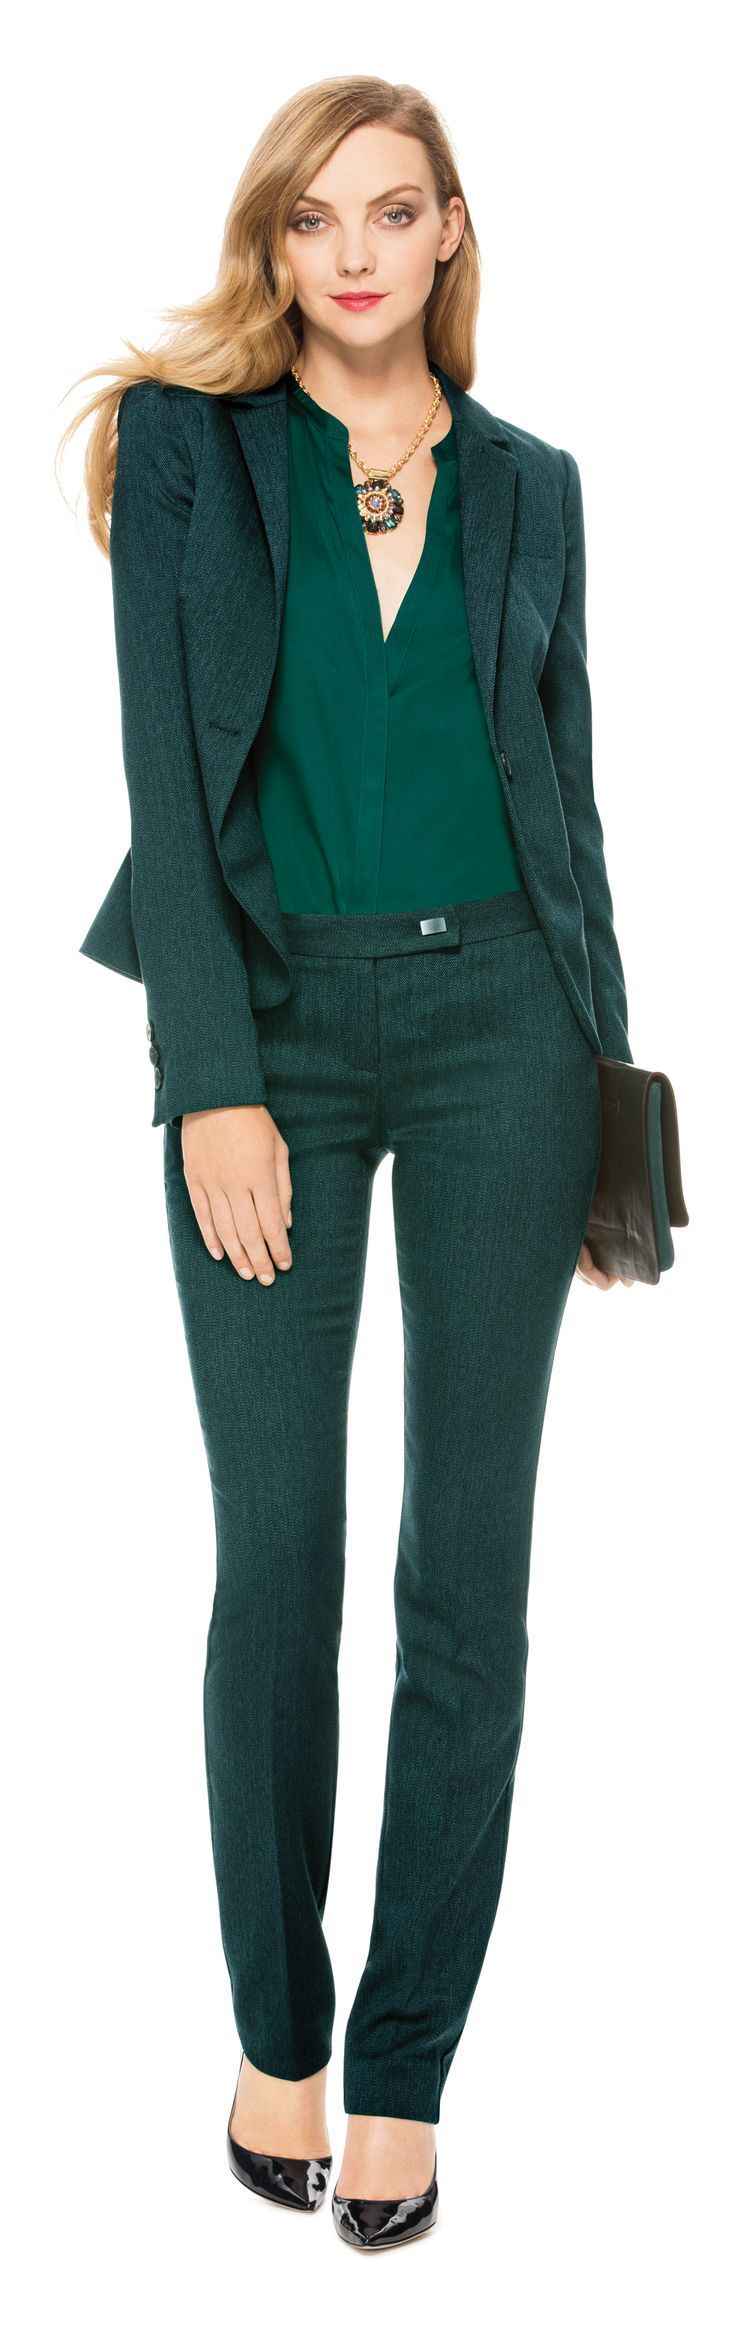 Green Pants Suit - Fat Pants